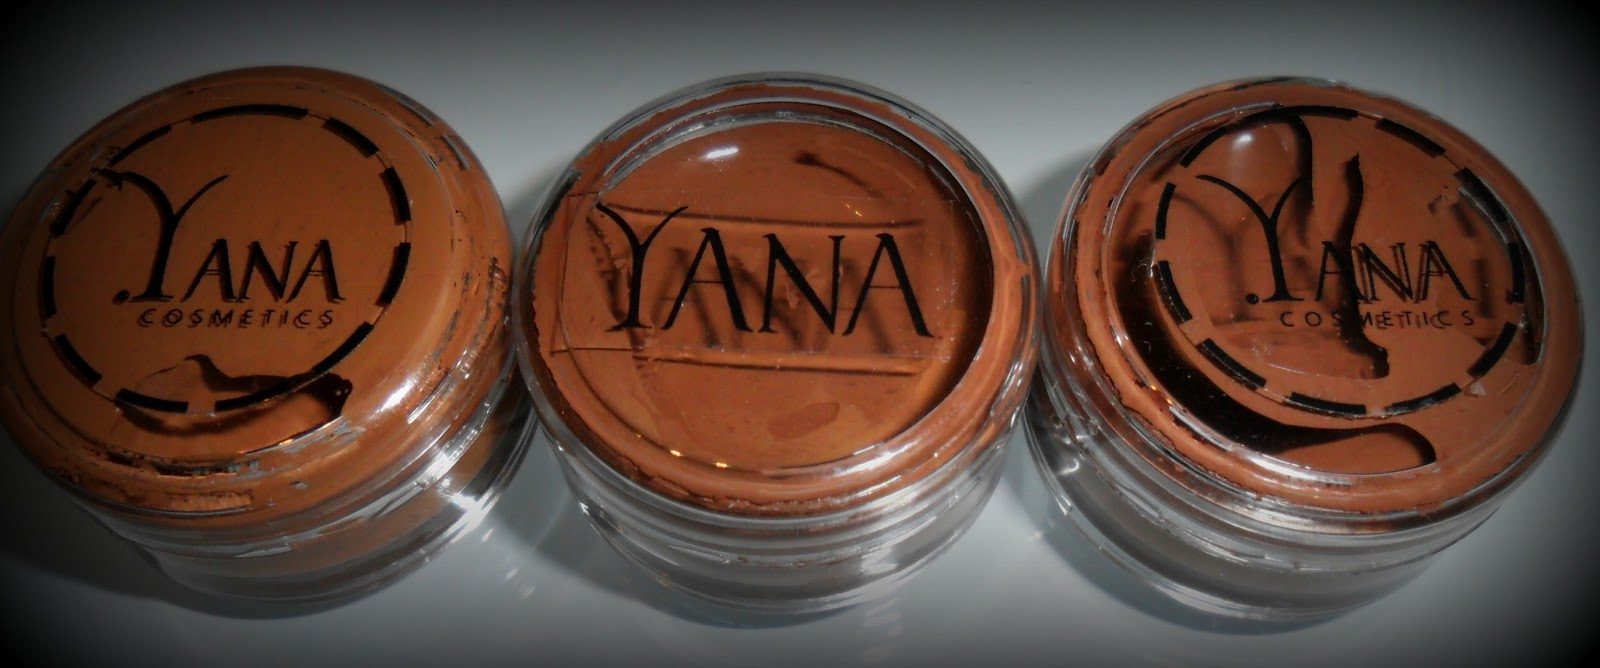 Yana Cosmetics Foundation